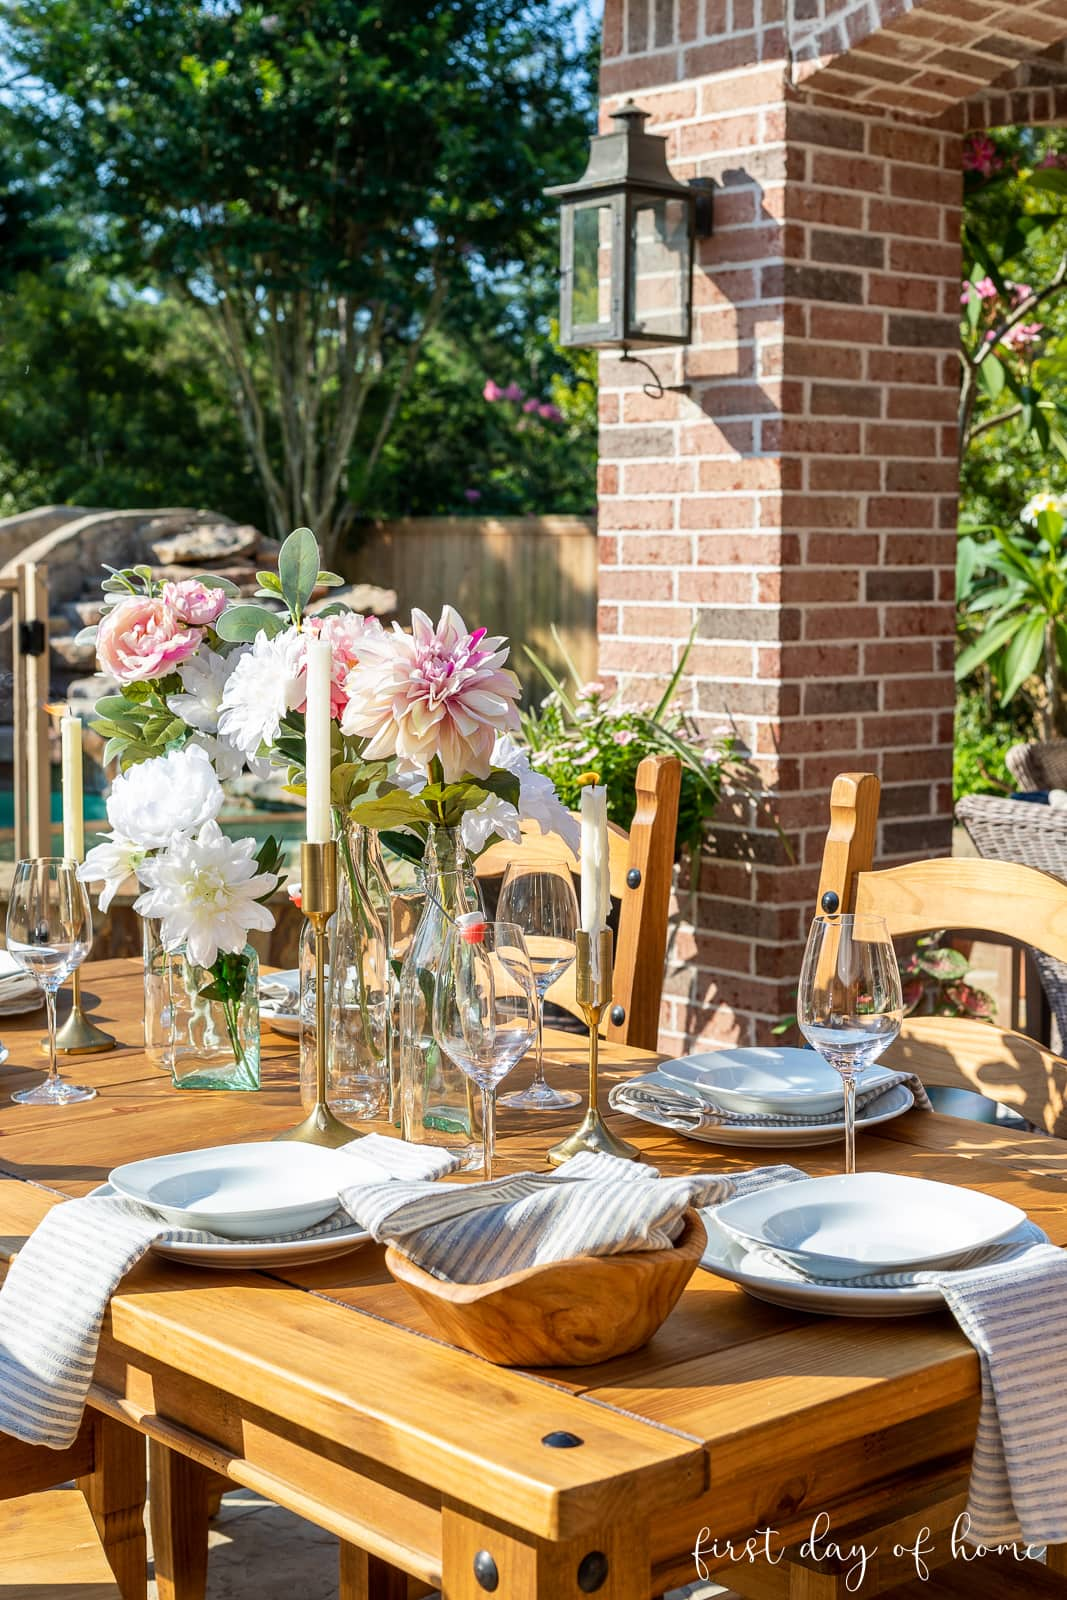 Outdoor dining table with floral centerpiece and taper candles